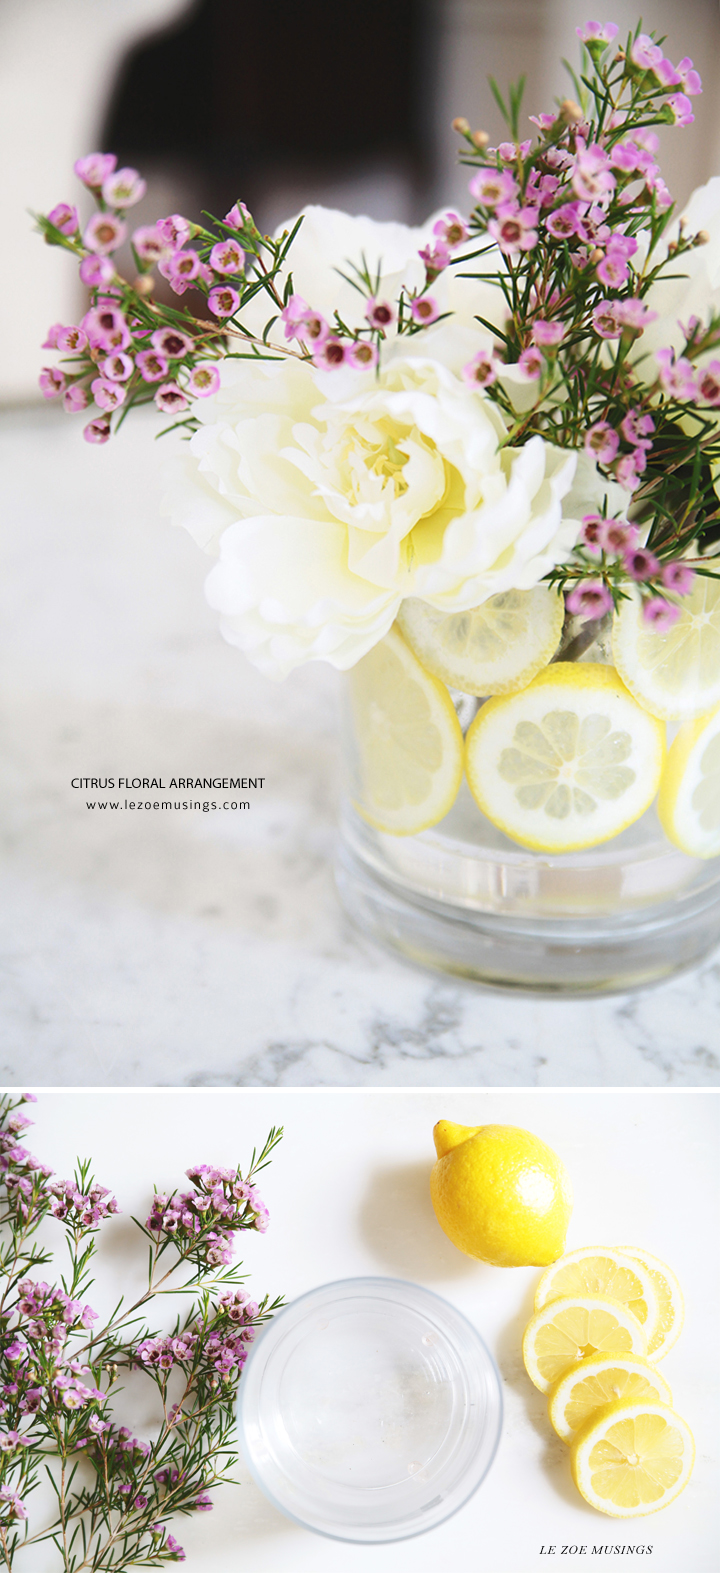 CITRUS FLORAL ARRANGEMENT BY LE ZOE MUSINGS